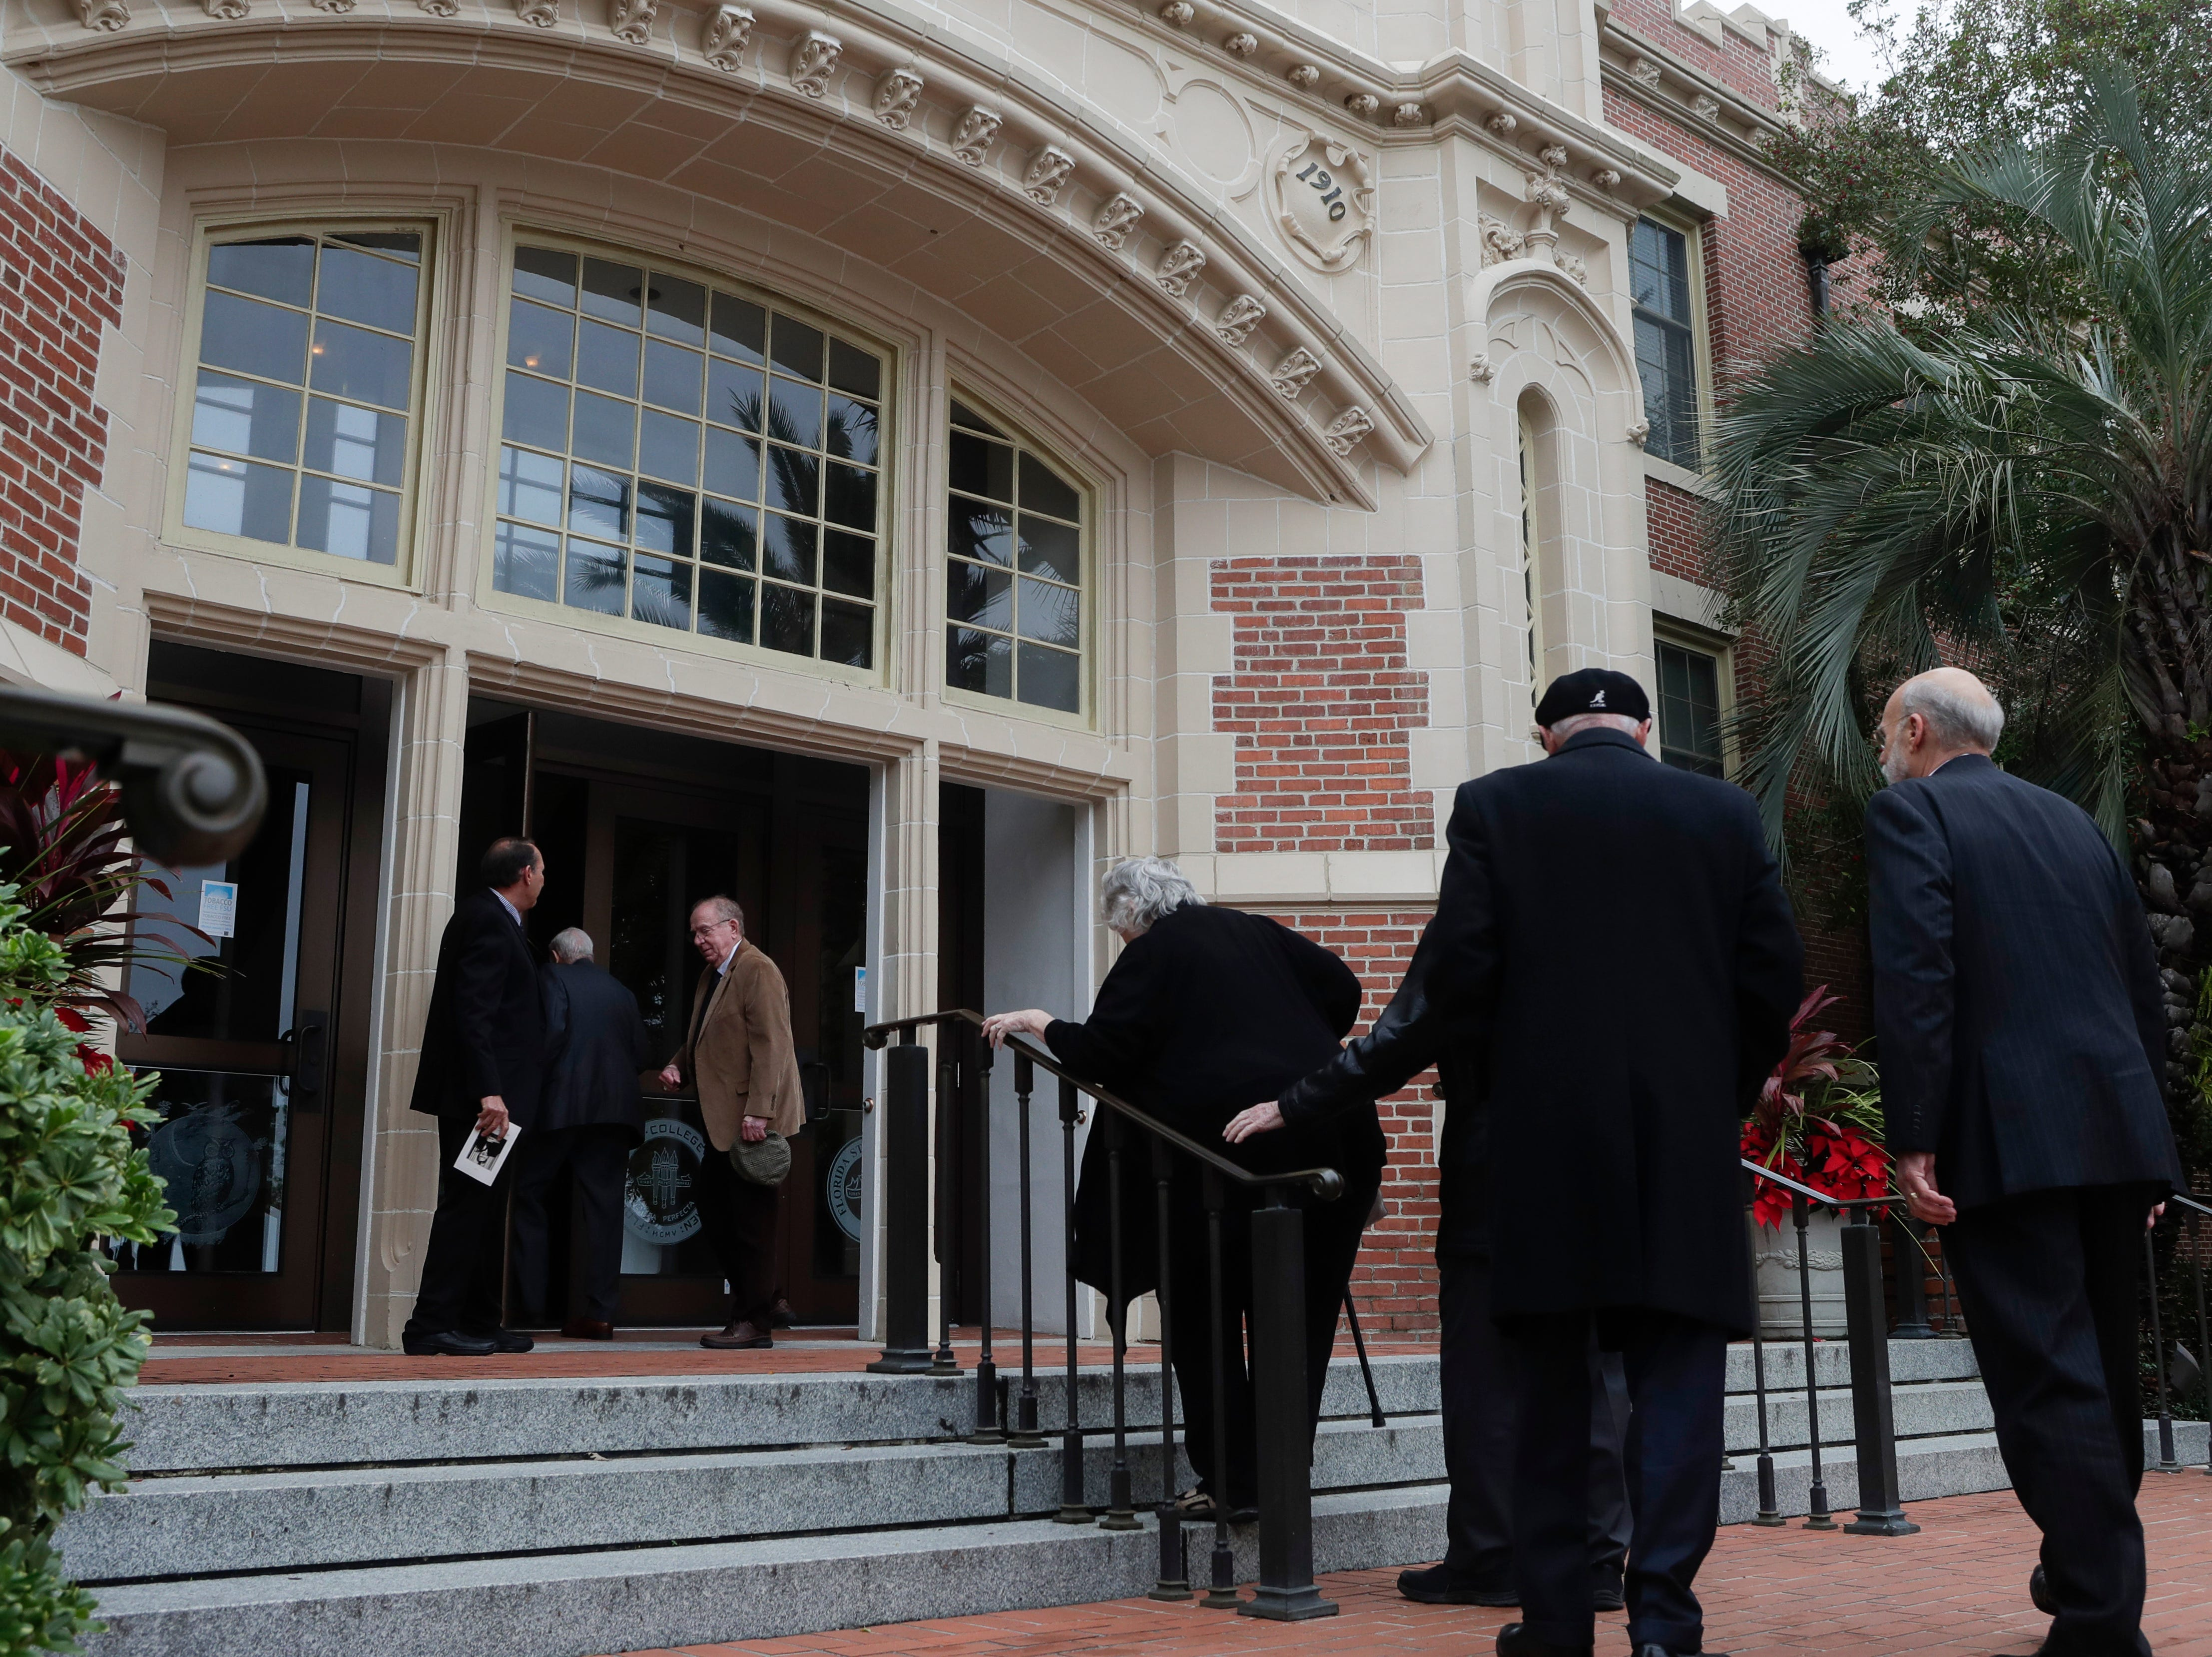 Those who wish to pay their respects make their way into Ruby Diamond for a funeral service for Florida State University President Emeritus T.K. Wetherell held Friday, Dec. 21, 2018.